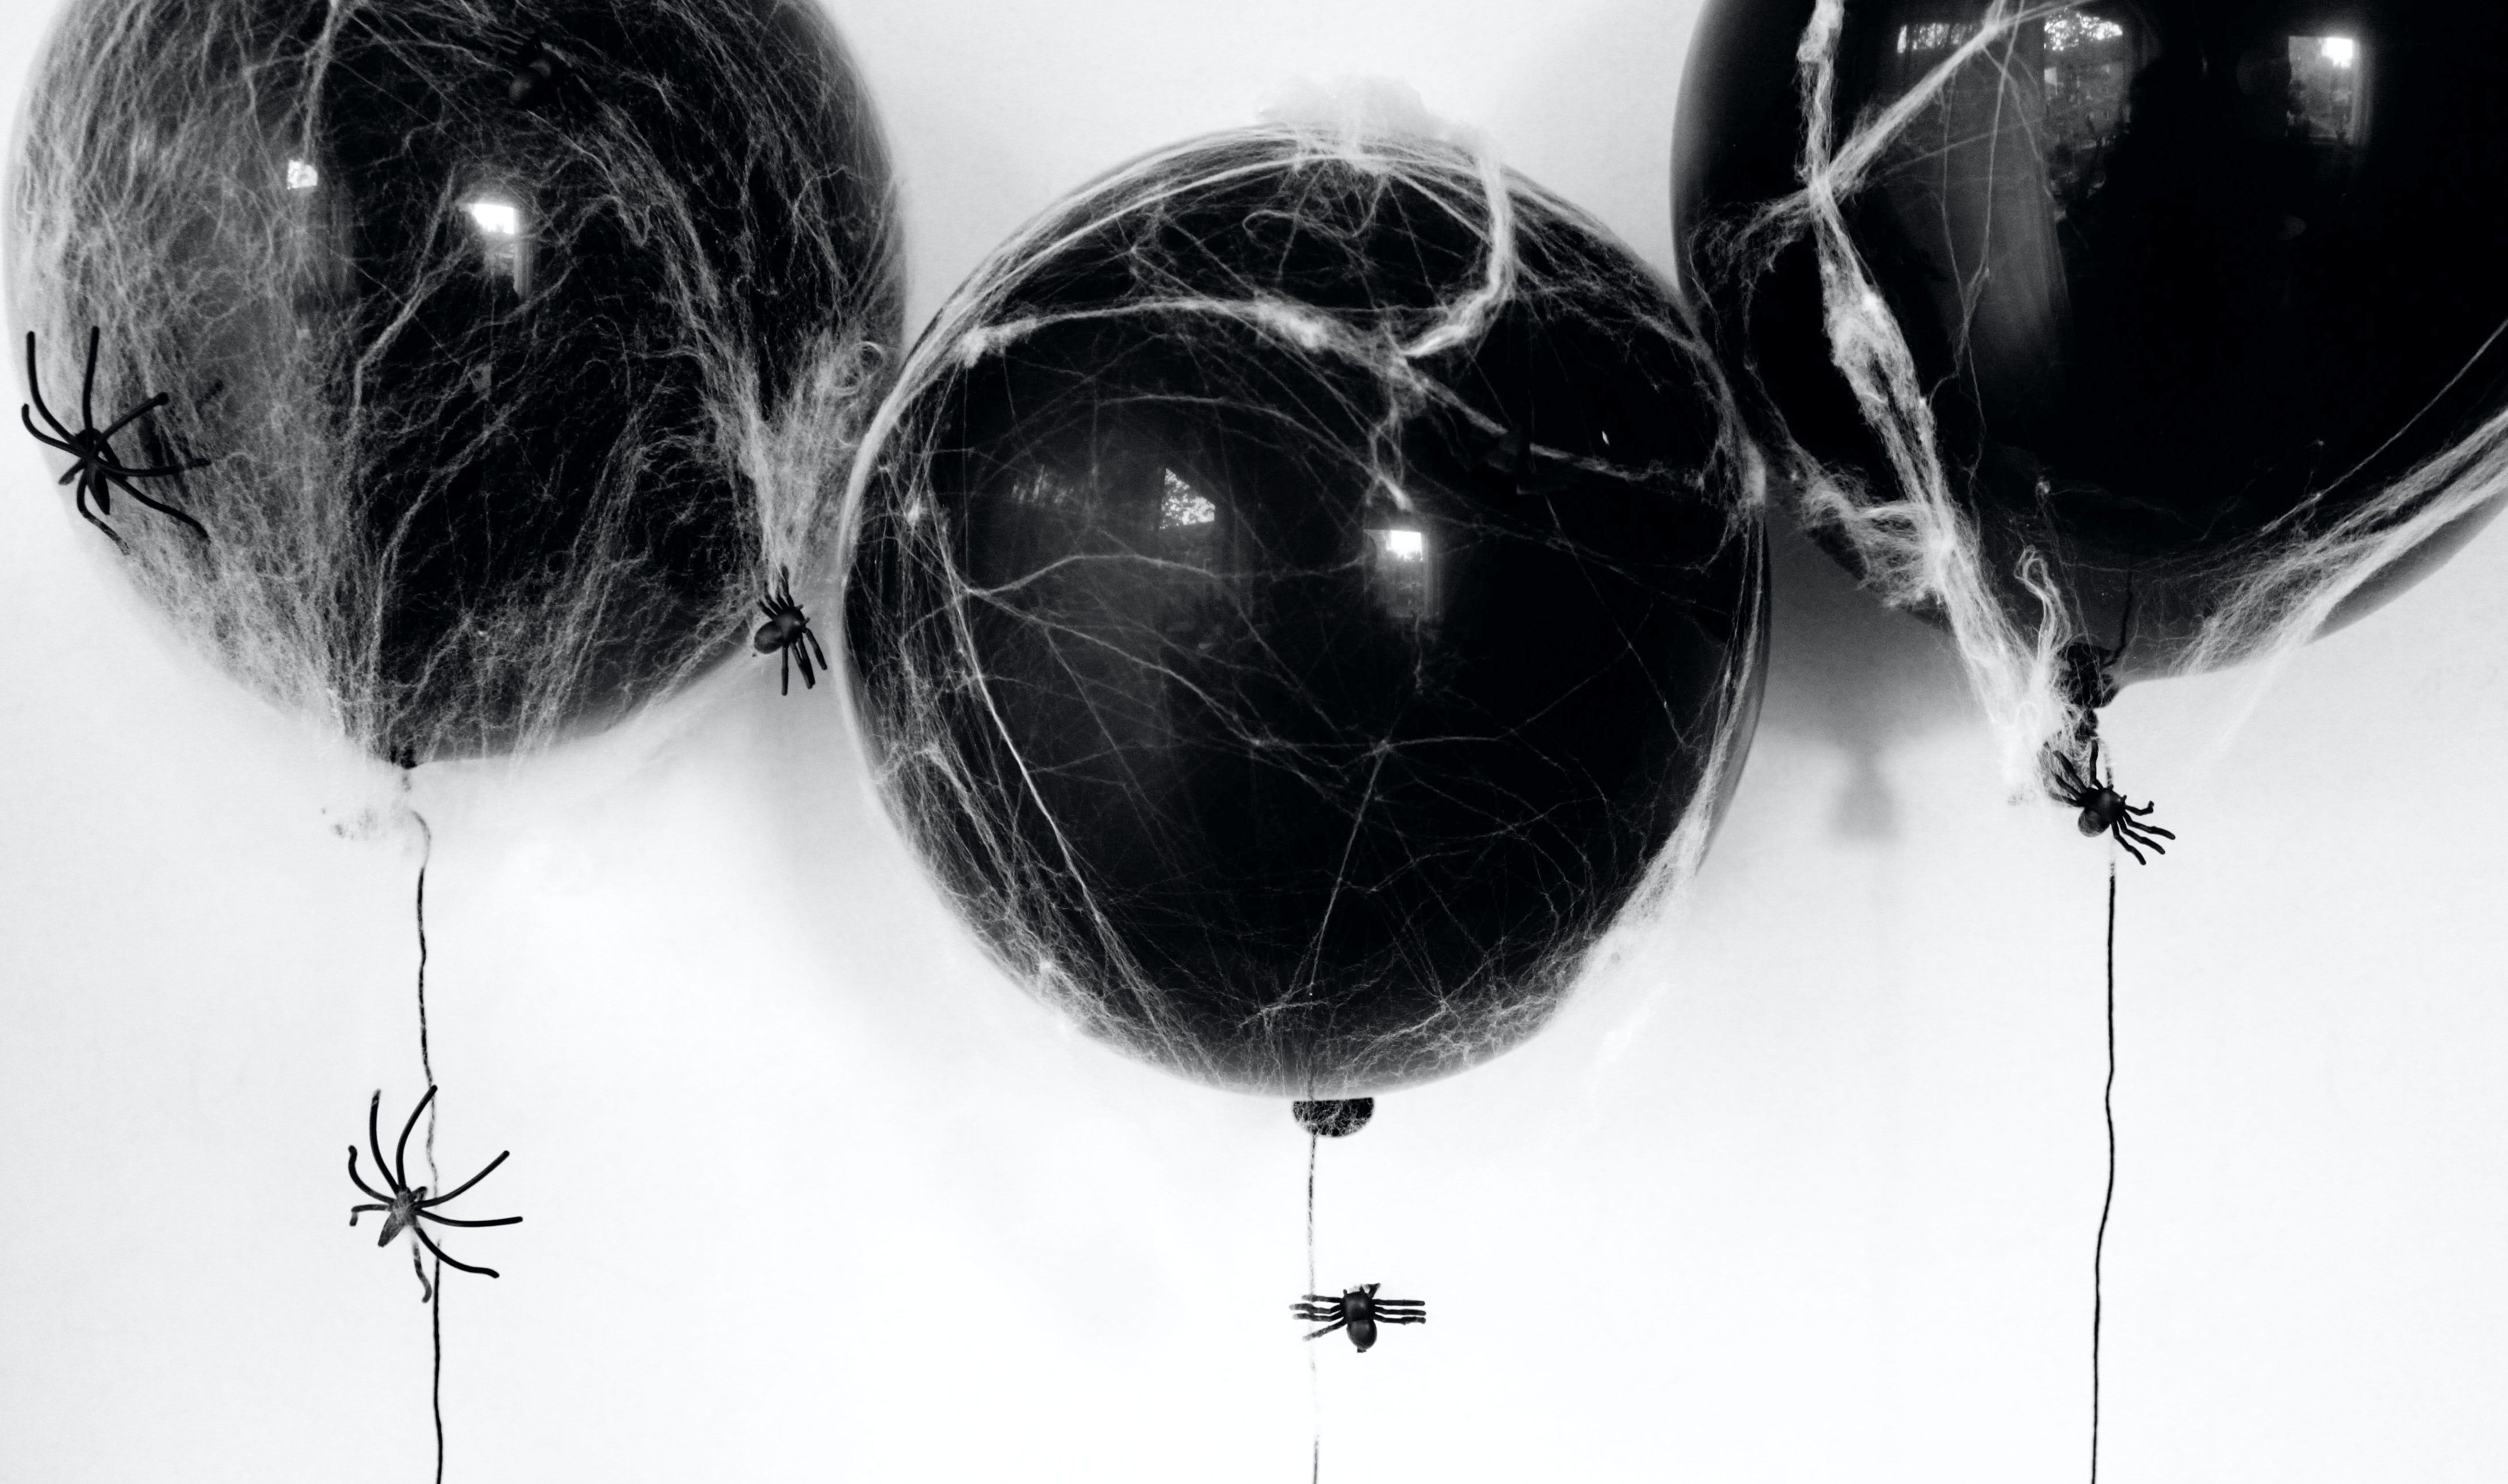 BABYBJÖRN Magazine – DIY Halloween decorations: Black balloons with spider web and plastic spiders.